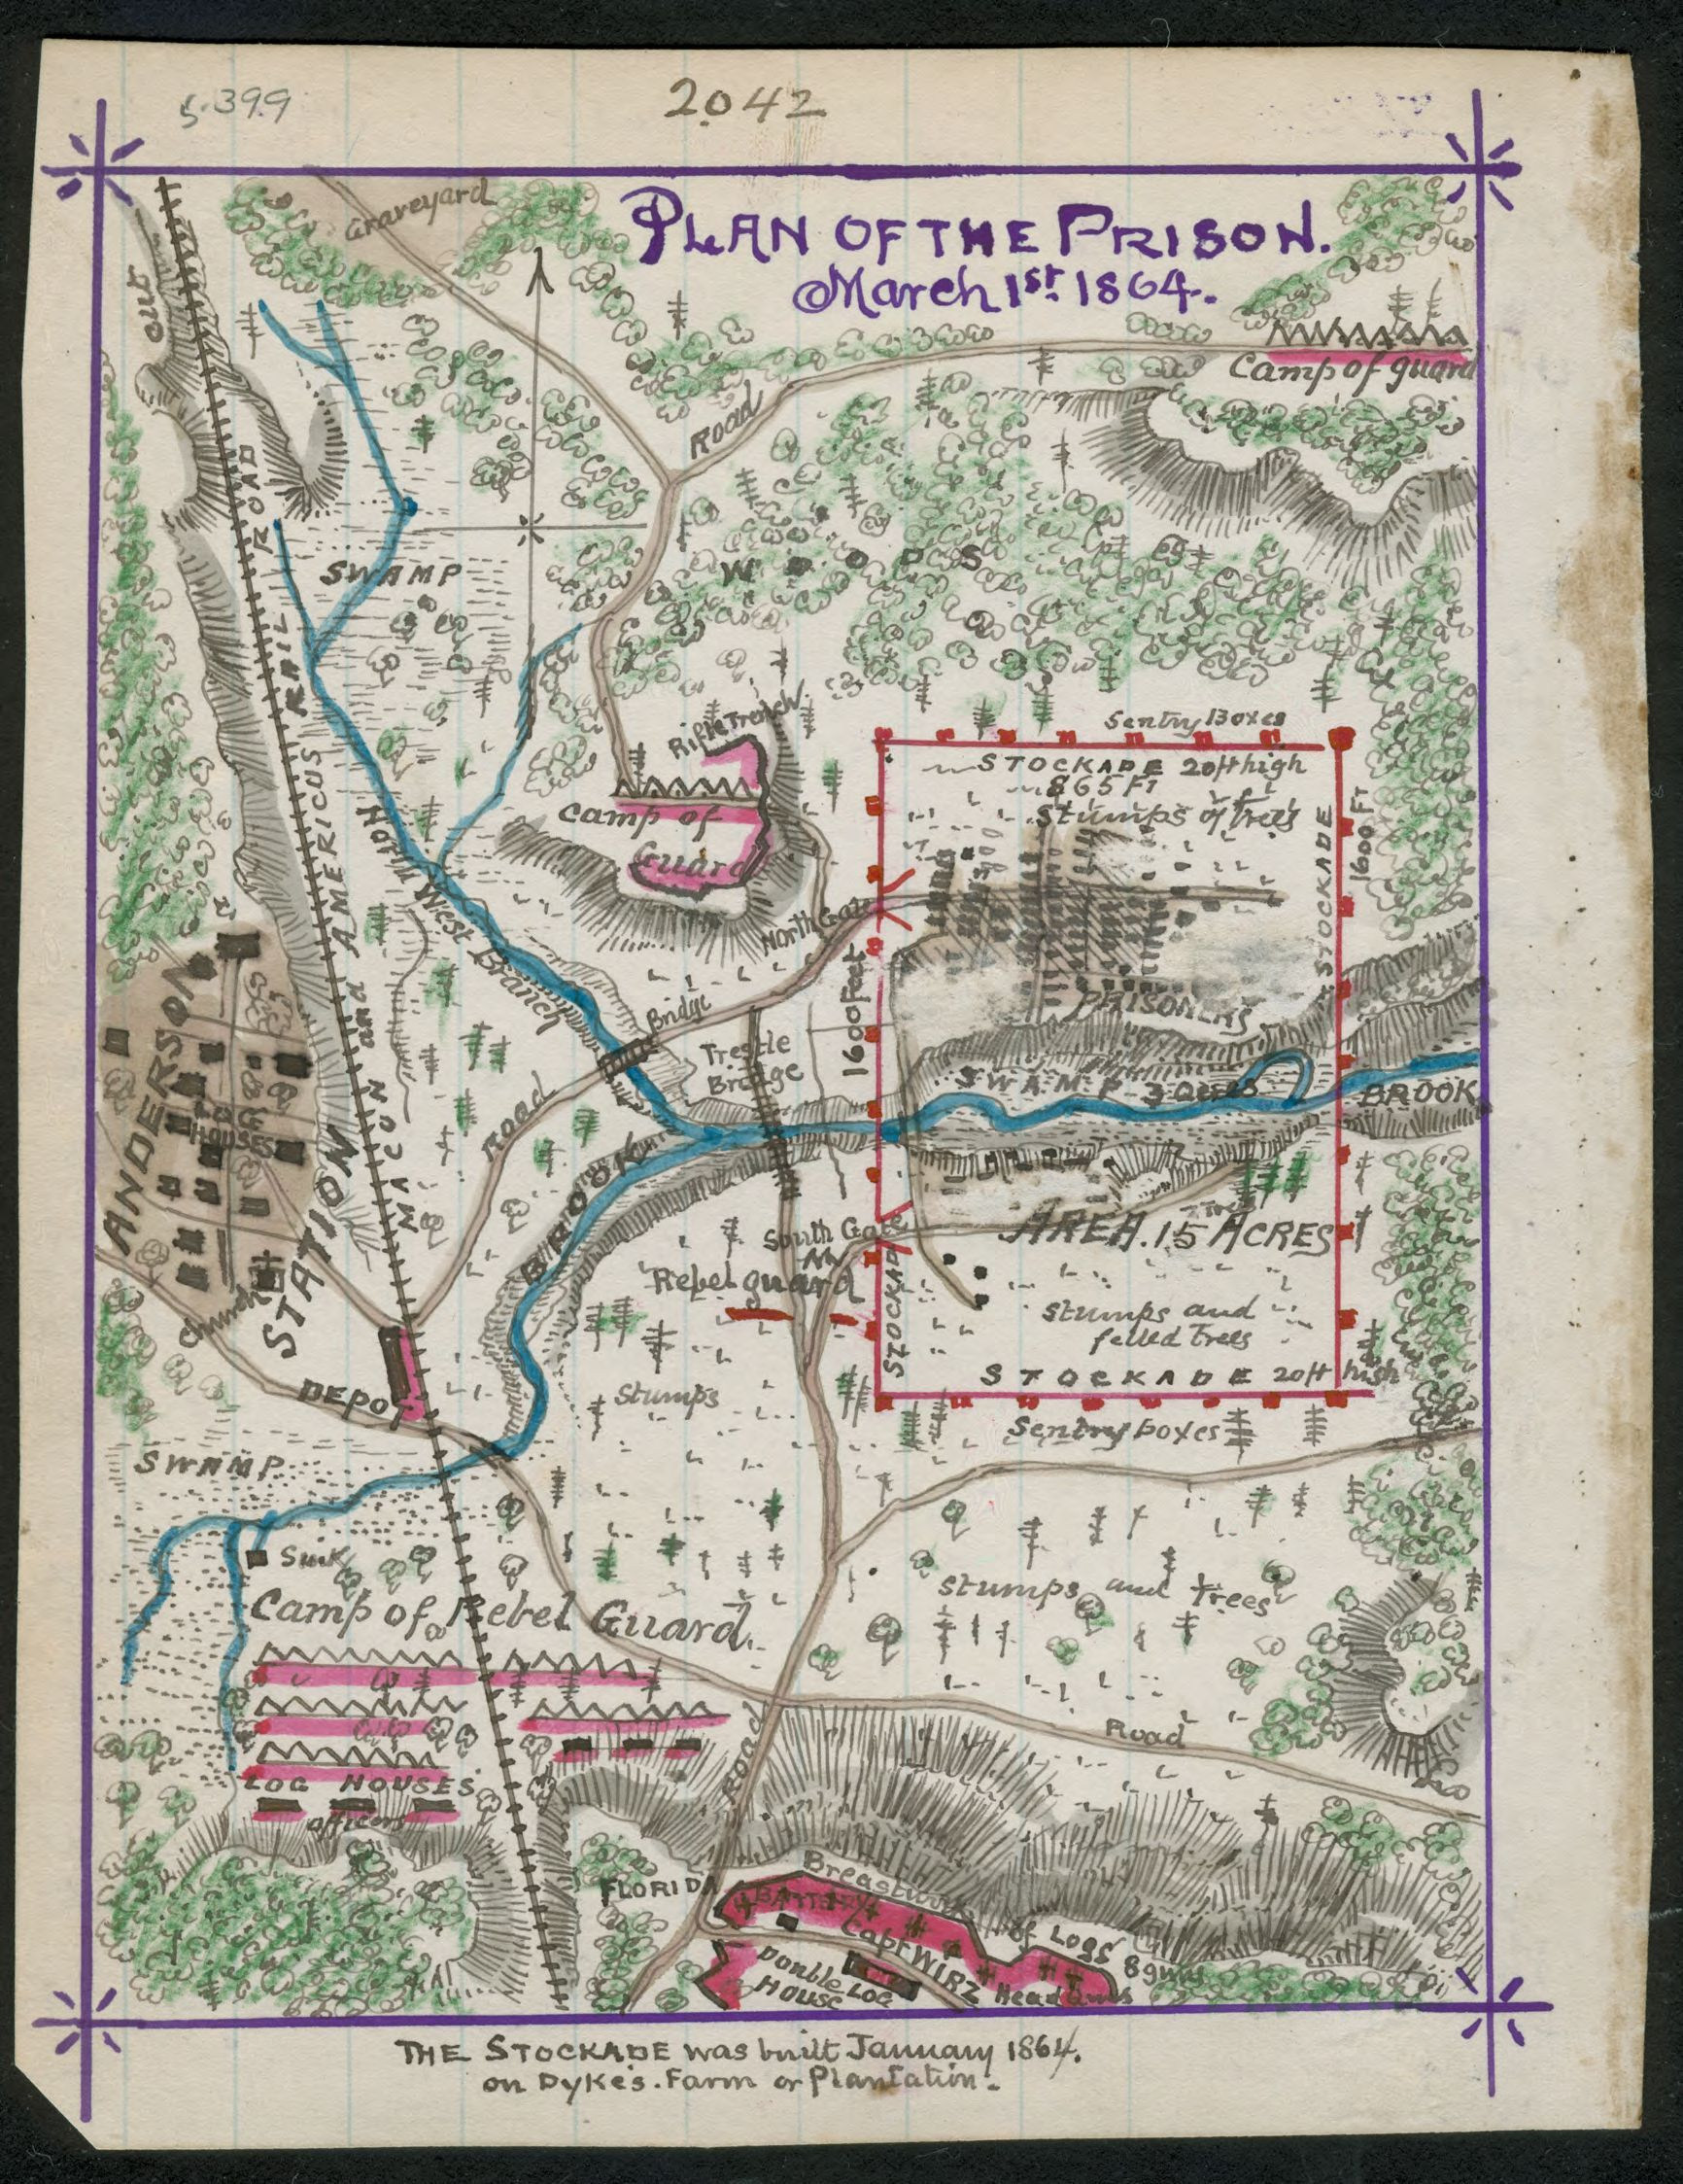 Map Of Georgia Prisons.Plan Of The Prison March 1 1864 Map Shows The Plan Of